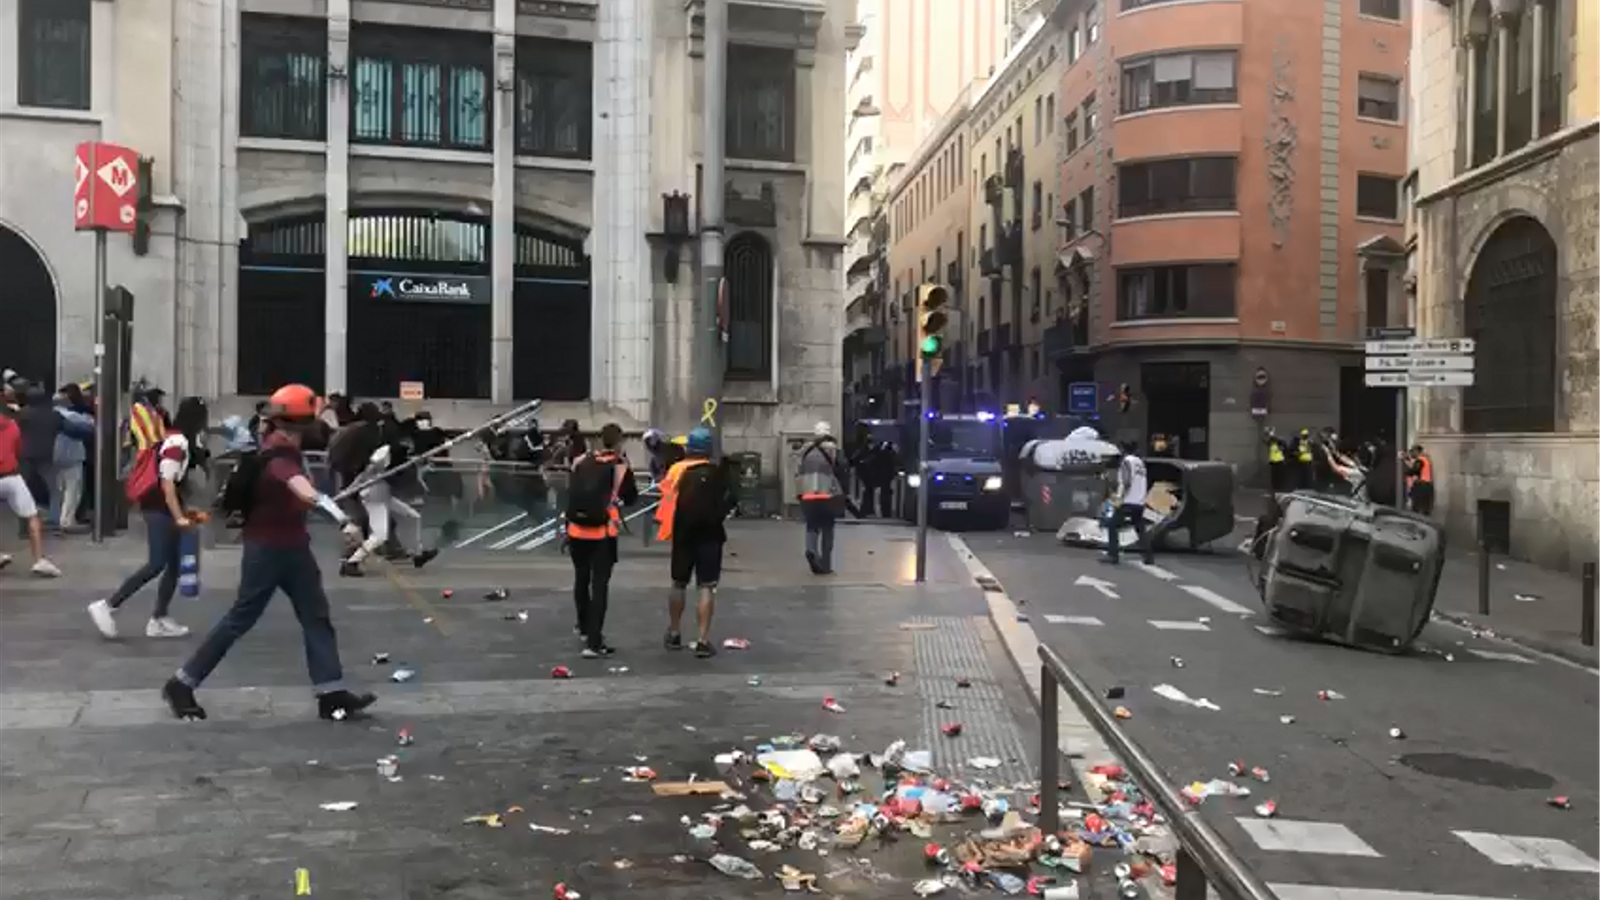 La Policia intenta dispersar els estudiants concentrats a la Via Laietana